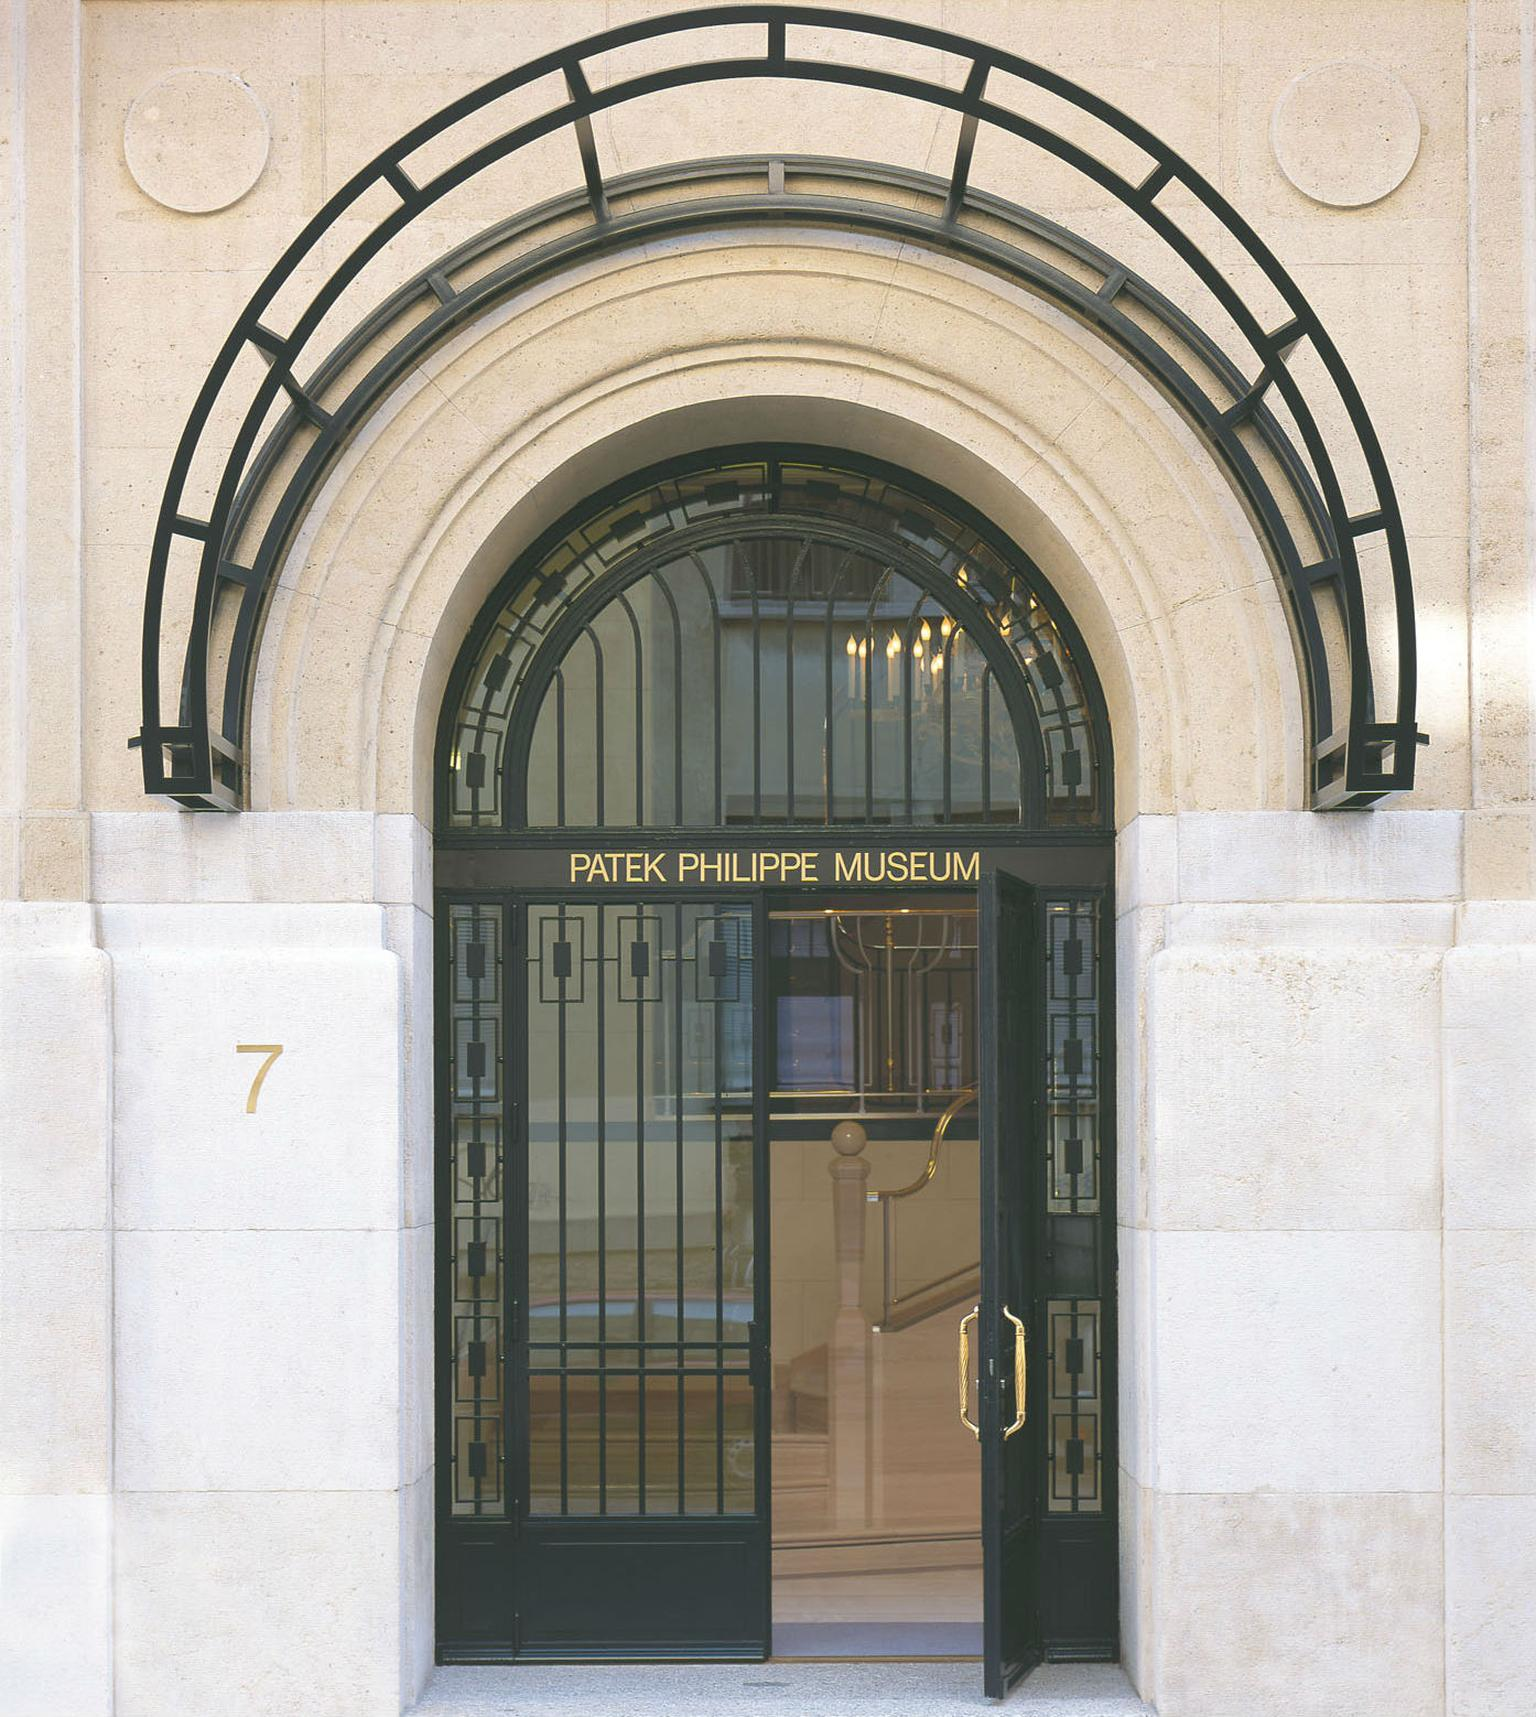 Patek Philippe Museum entrance